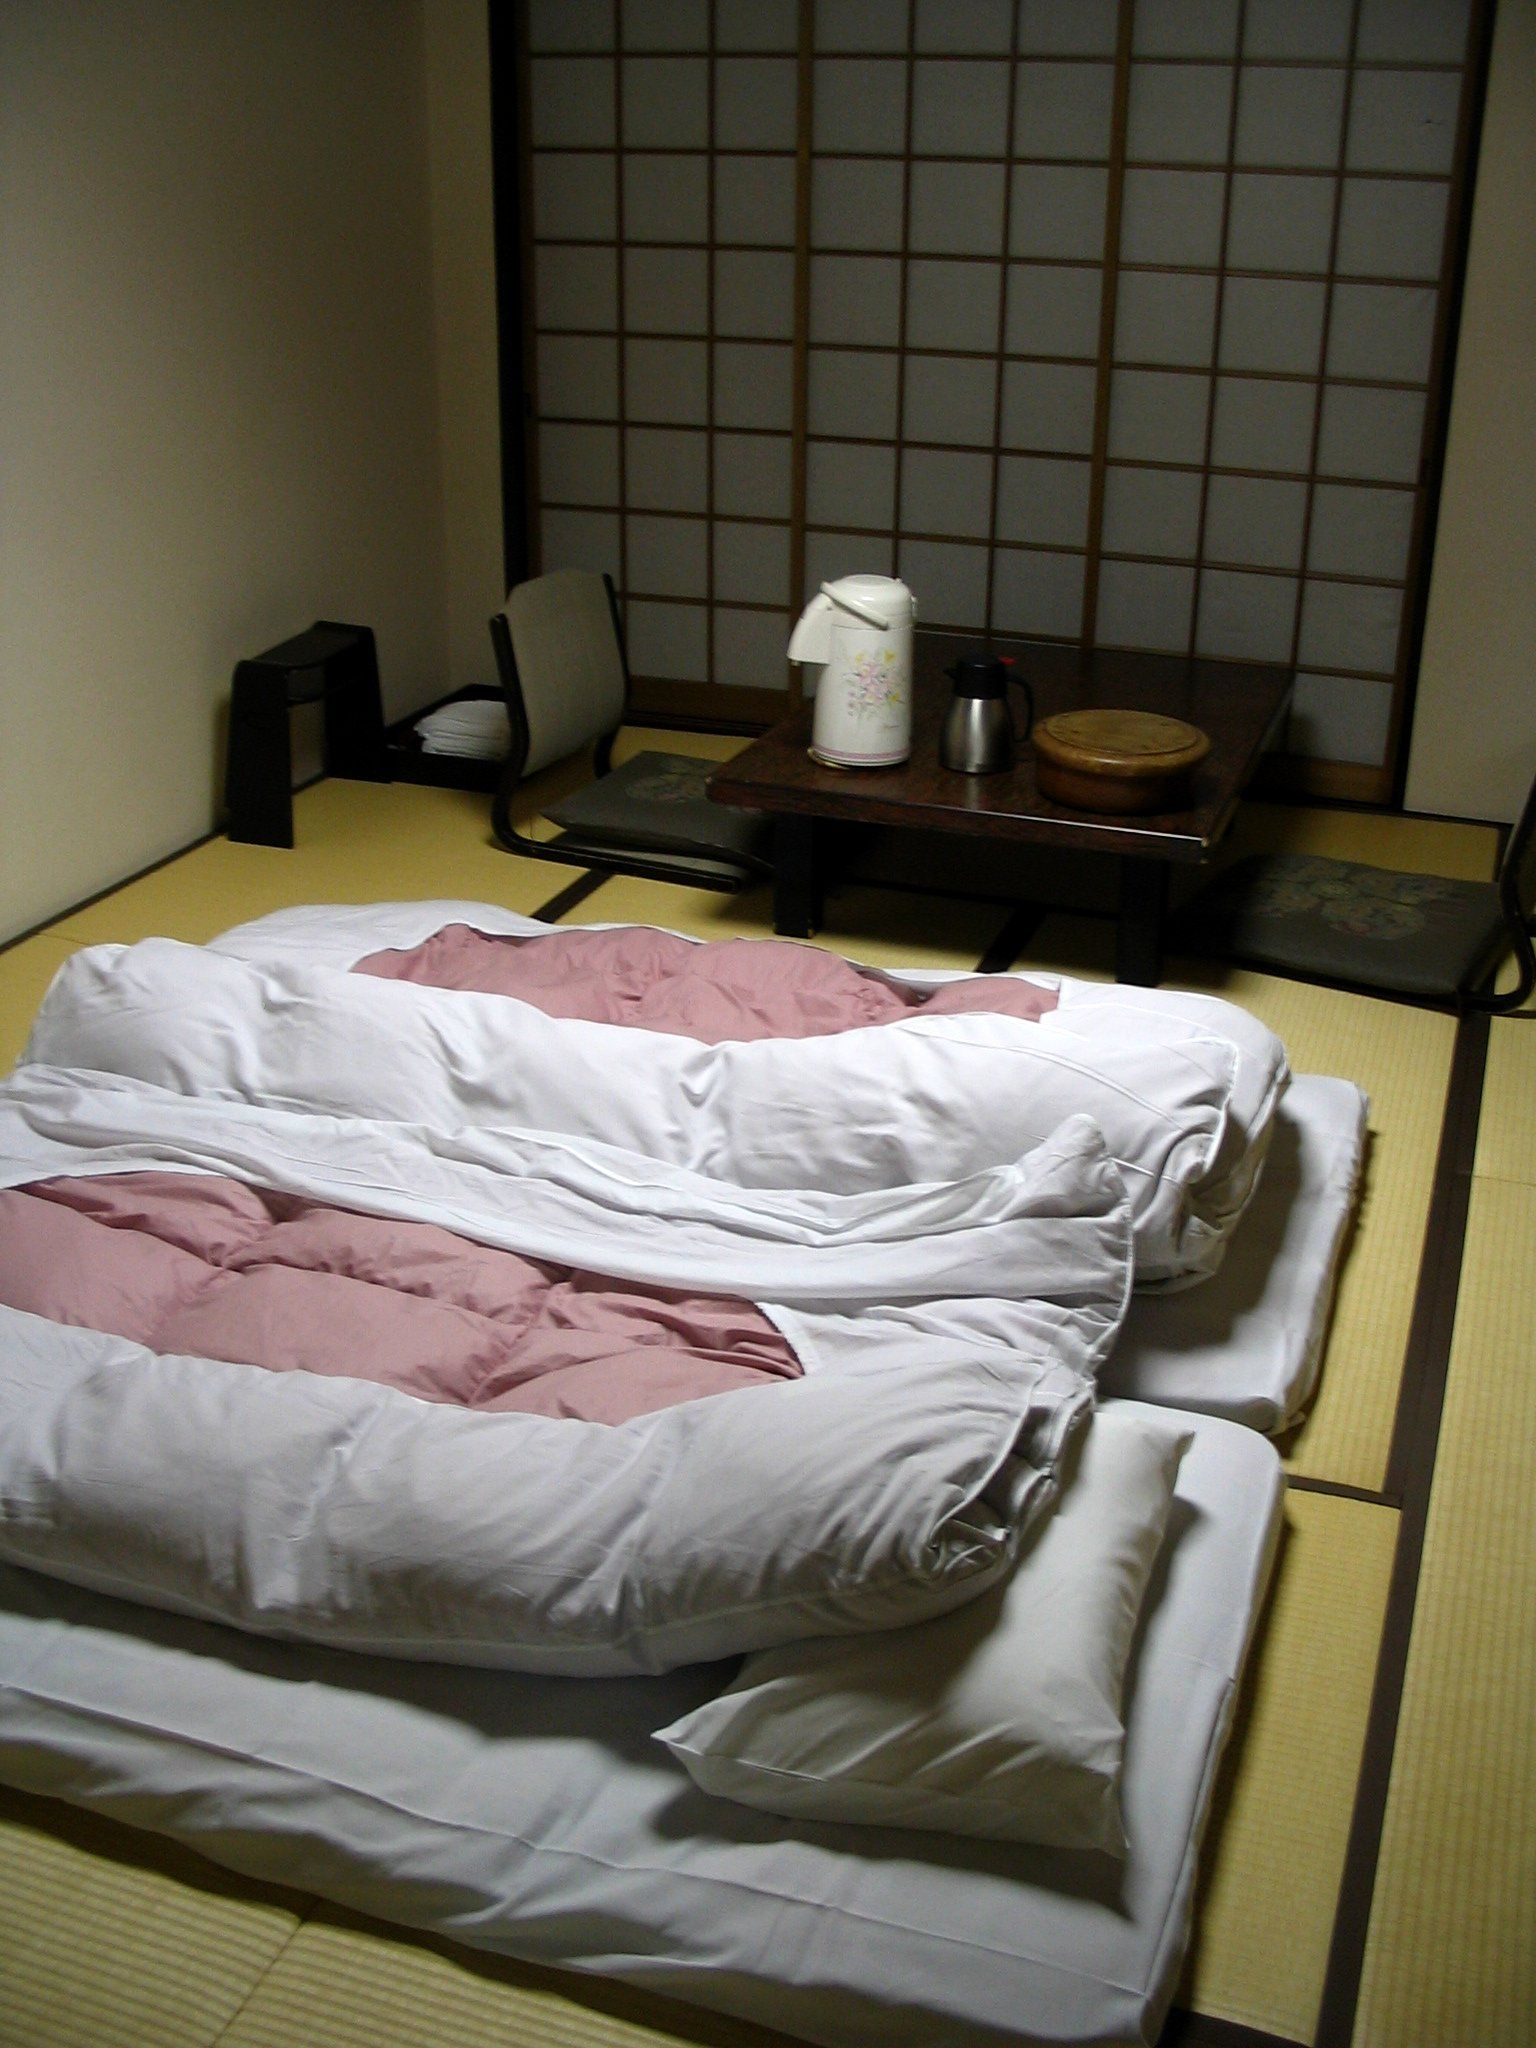 Futons (With images) Japanese floor bed, Japanese house